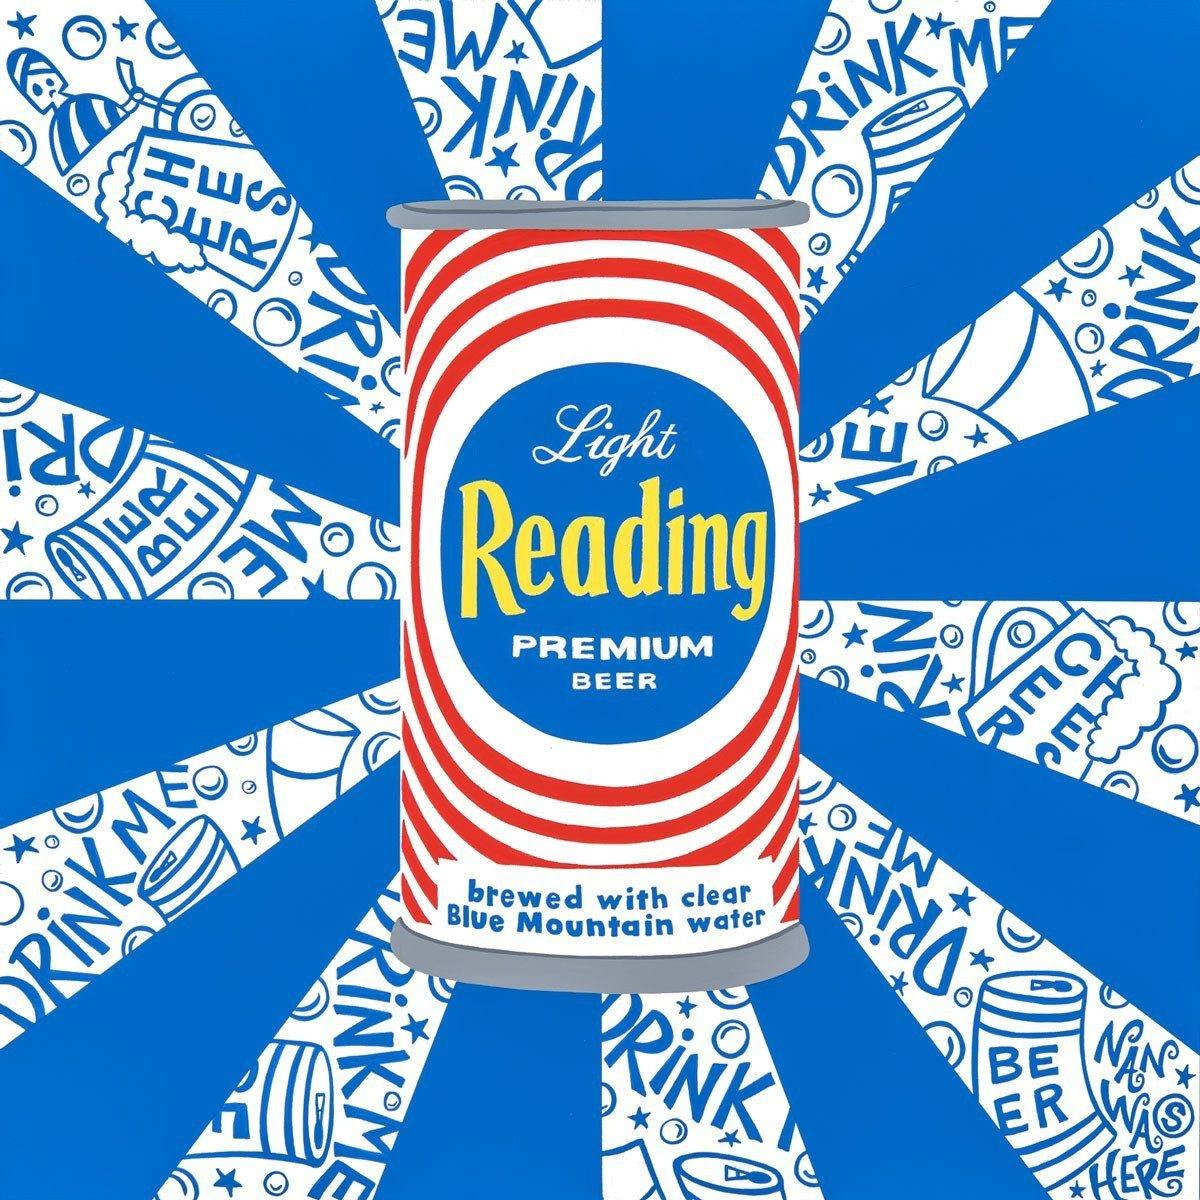 Light Reading Beer Can - Original | Fine Art and Limited Edition Prints | The Art Of Nan Coffey